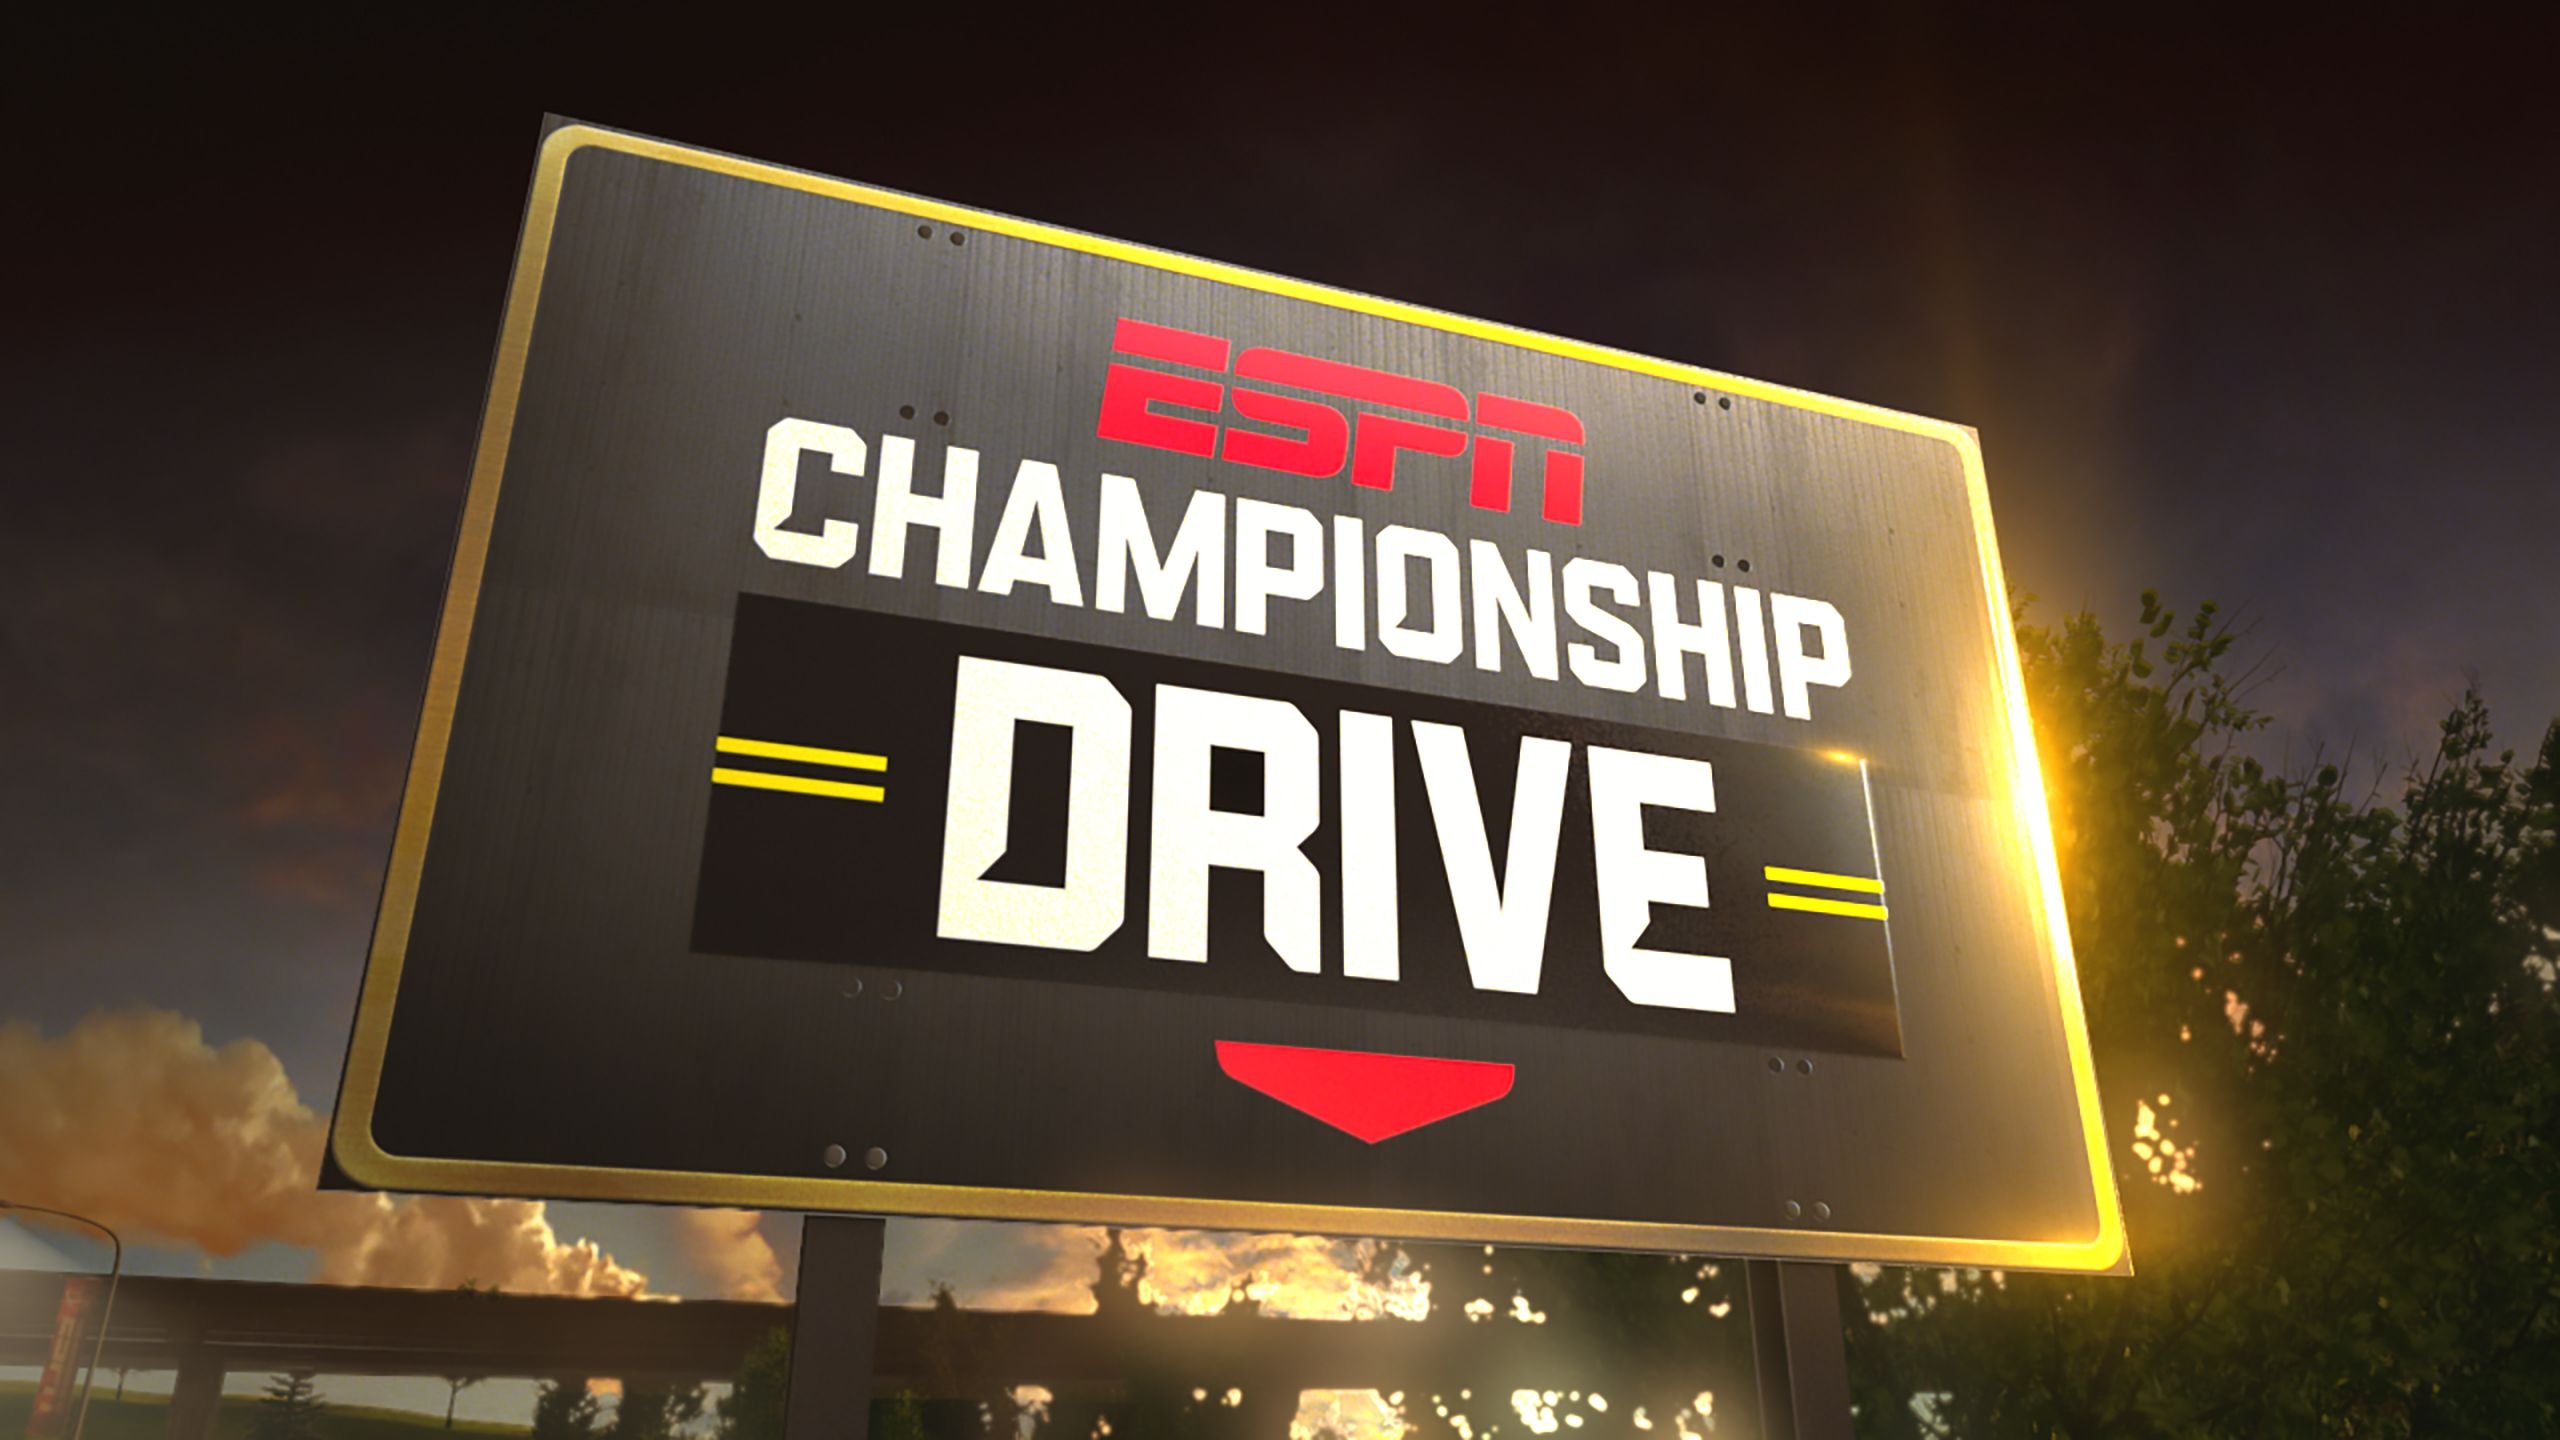 Sun, 10/22 - Championship Drive: Who's In? Presented by Chick-fil-A